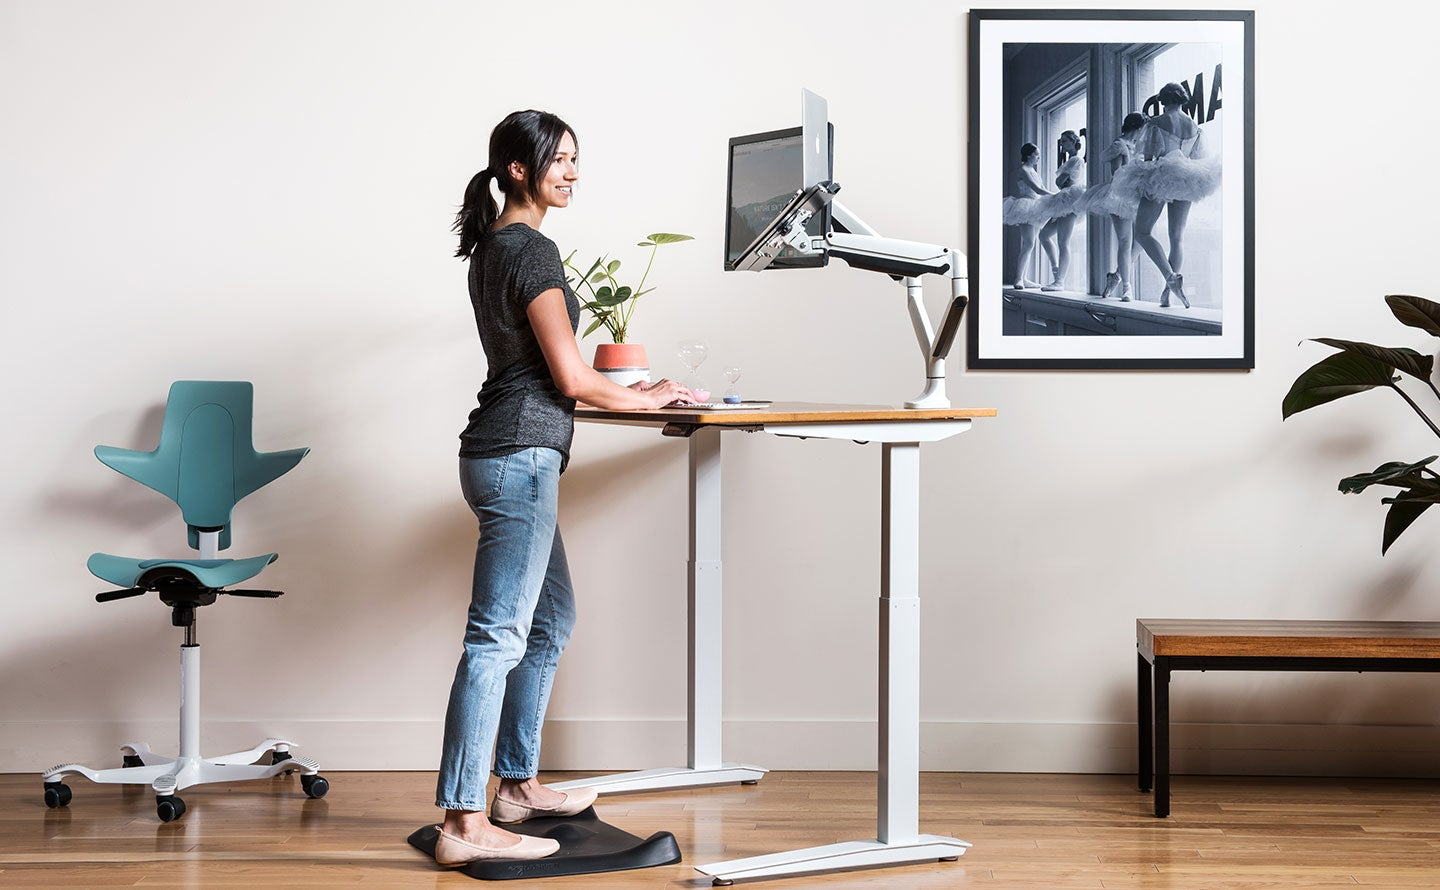 fully topo mini and topo anti fatigue mats topo mini in use by woman with jarvis desk lifestyle photo